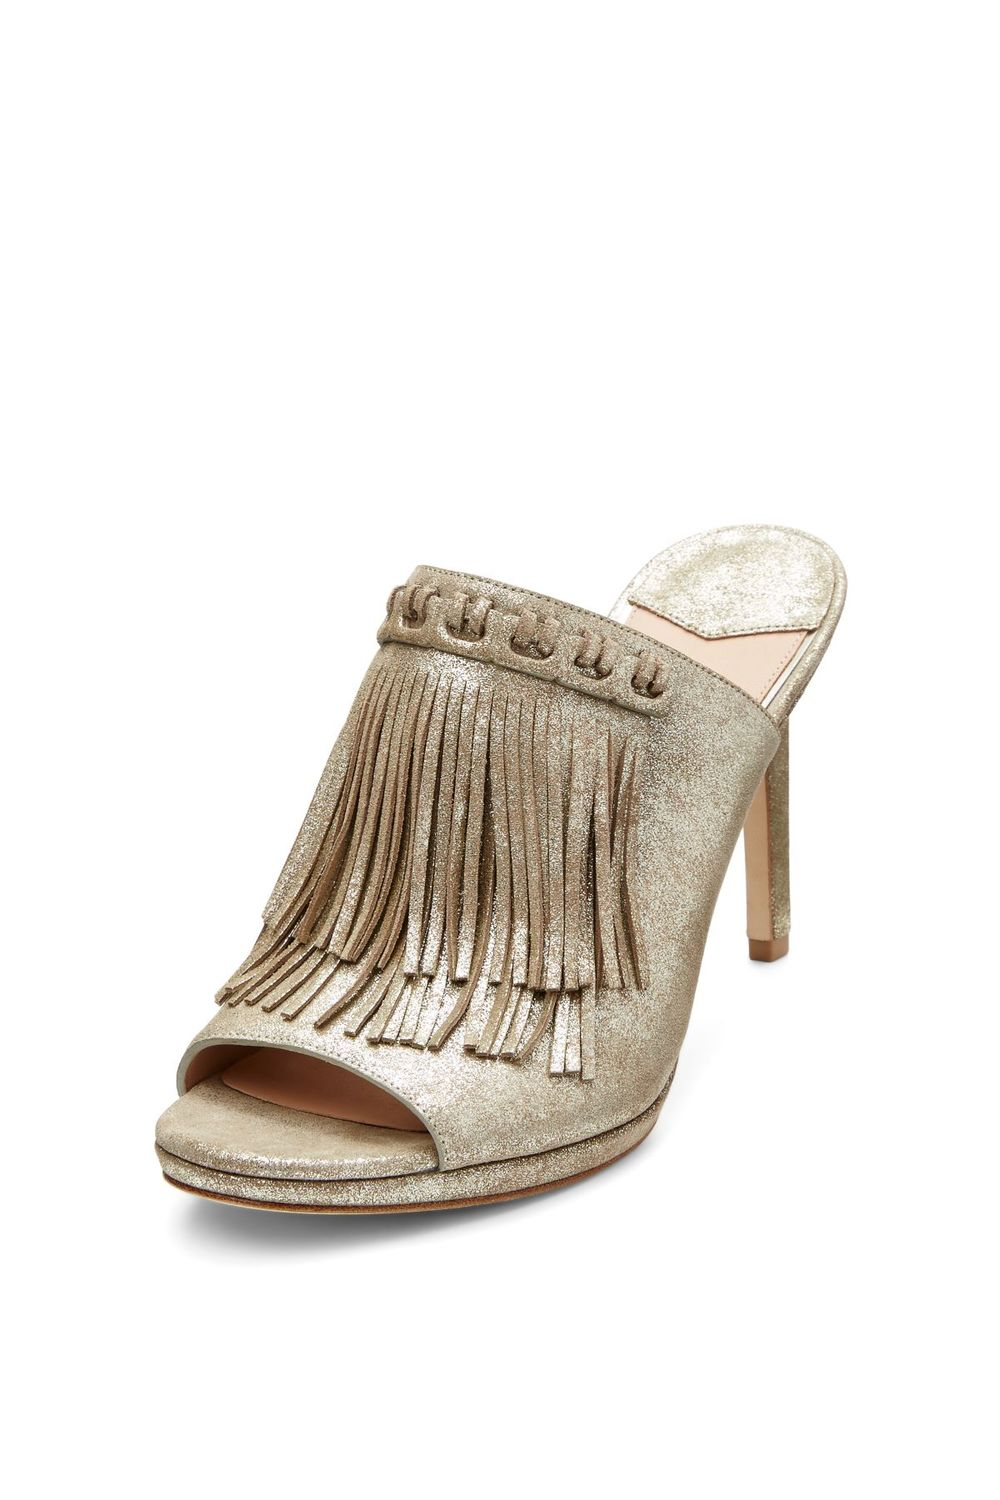 DVF Langley Fringed Mule. DVF. $378.